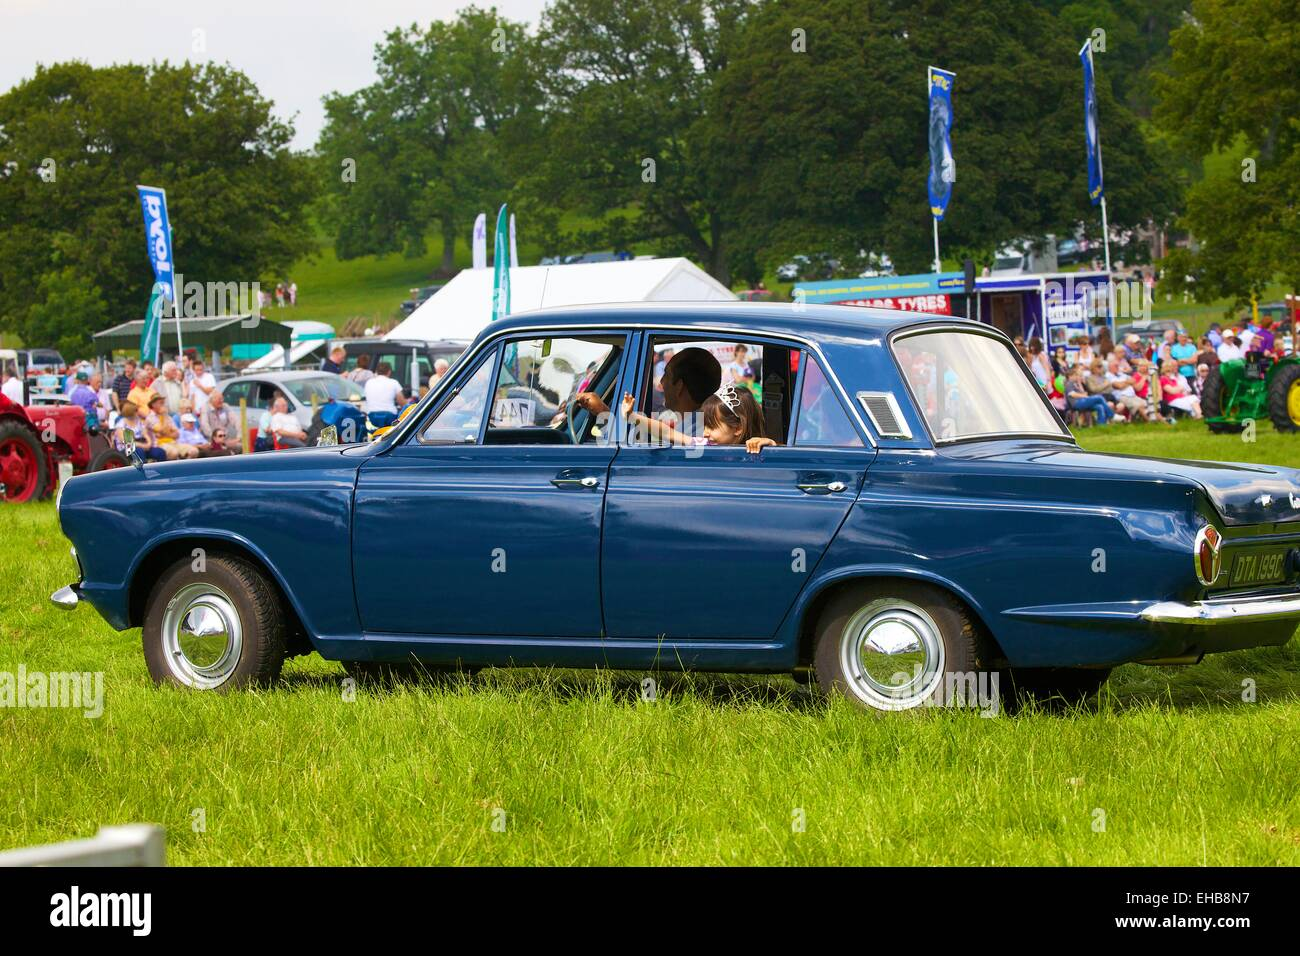 Ford Cortina Mark I classic car. Skelton Show Cumbria, England, UK ...